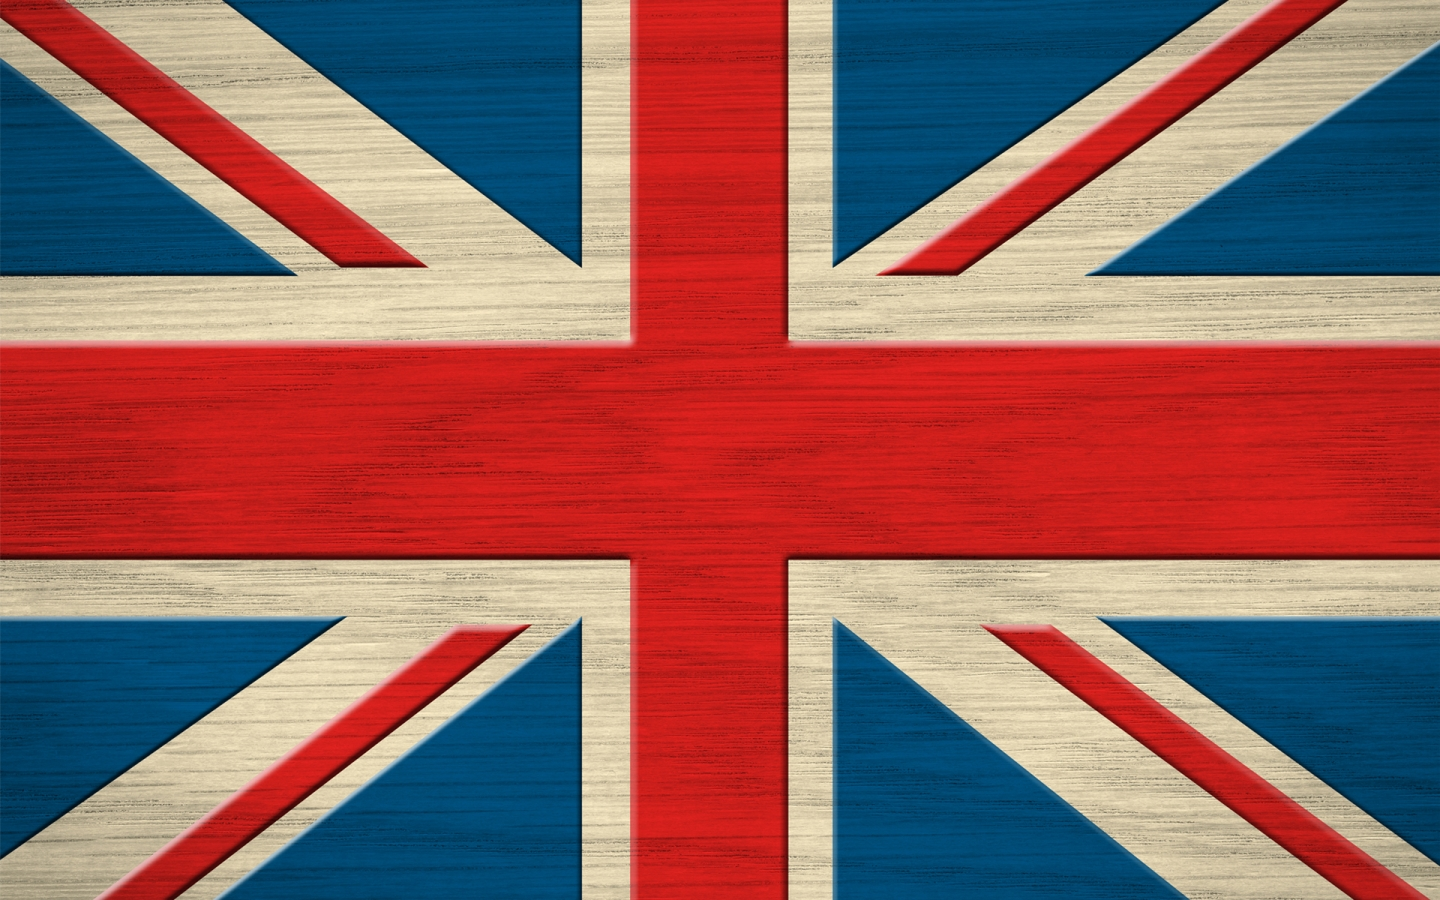 Textured England Flag for 1440 x 900 widescreen resolution